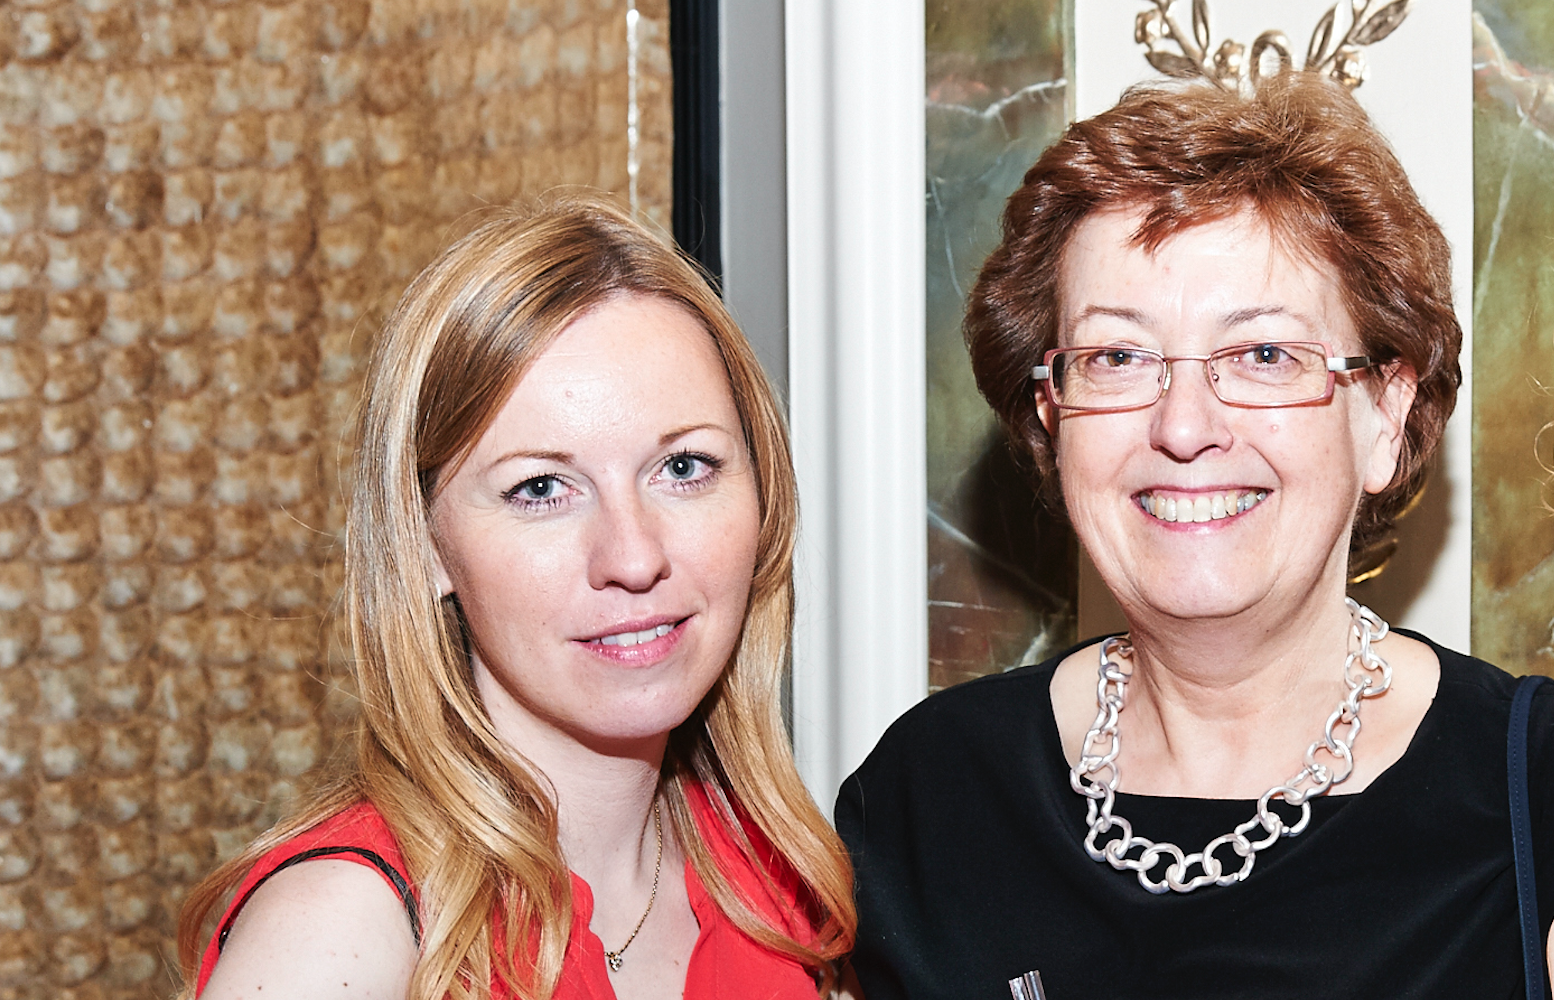 Above: Liz Killick (right) with her daughter Clare White with whom she co-owns Calladoodles.